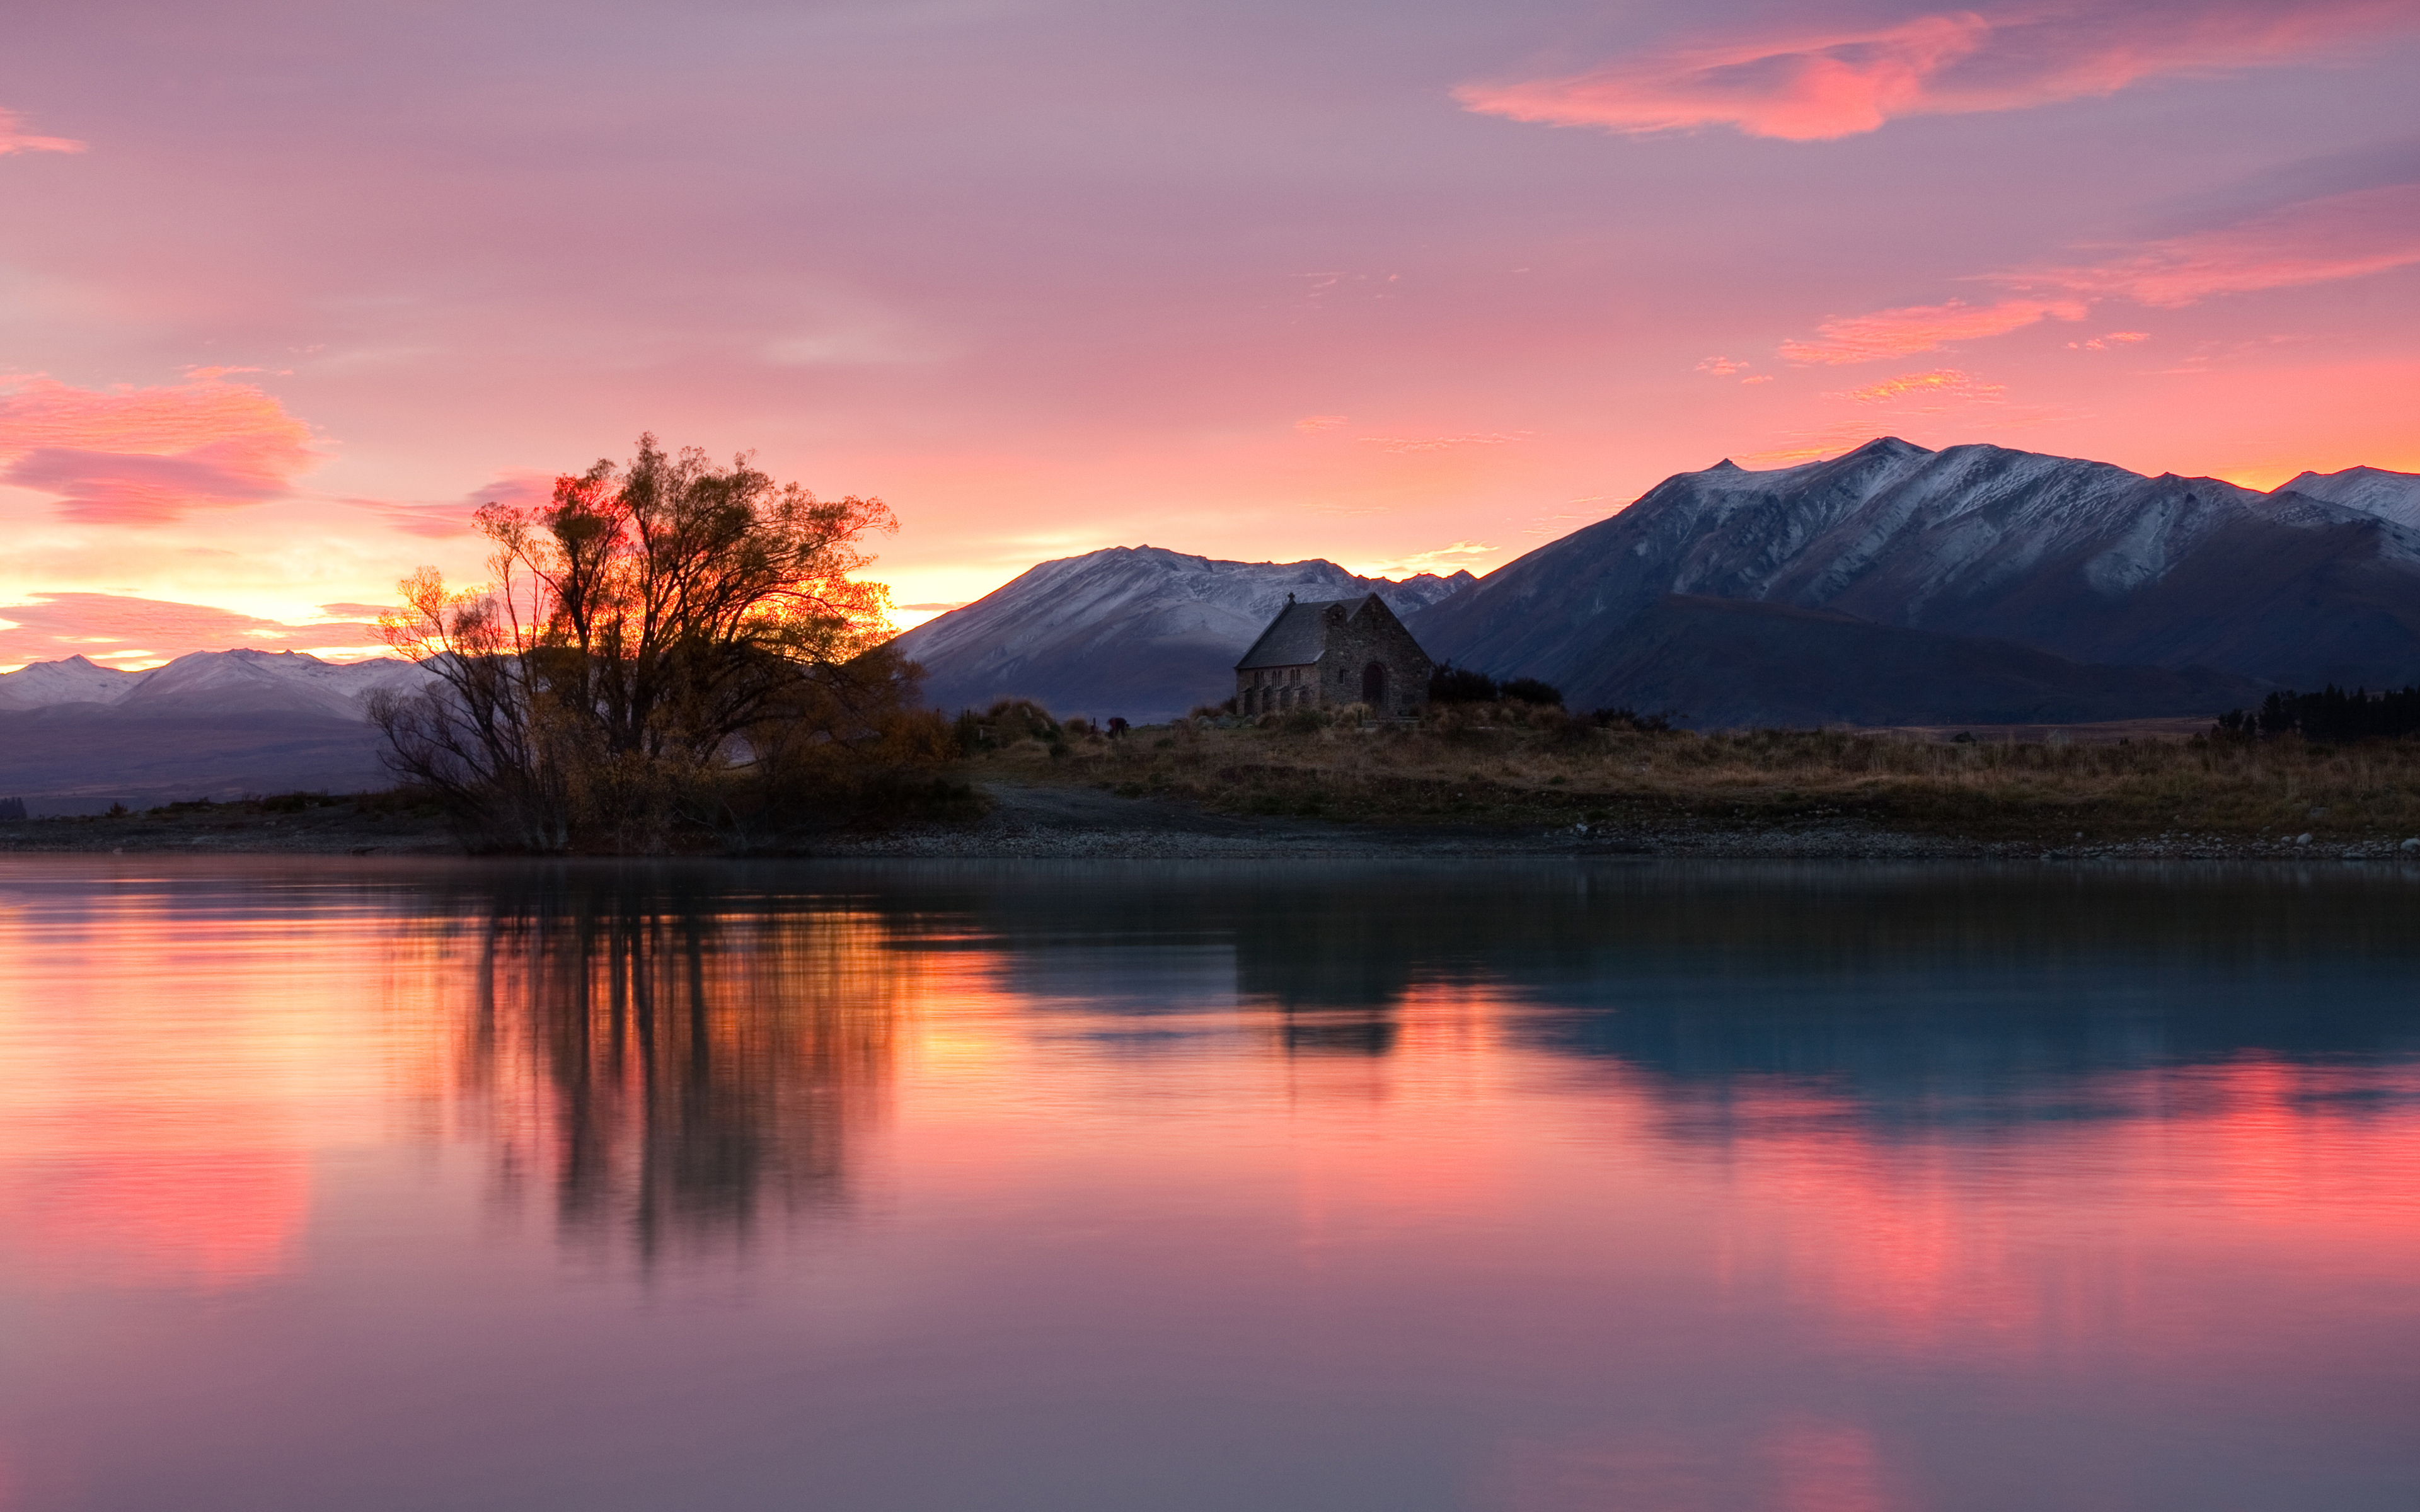 Nz Shooting Video Wallpaper: New Zealand, Sunrise, Lake, HD 4K Wallpaper